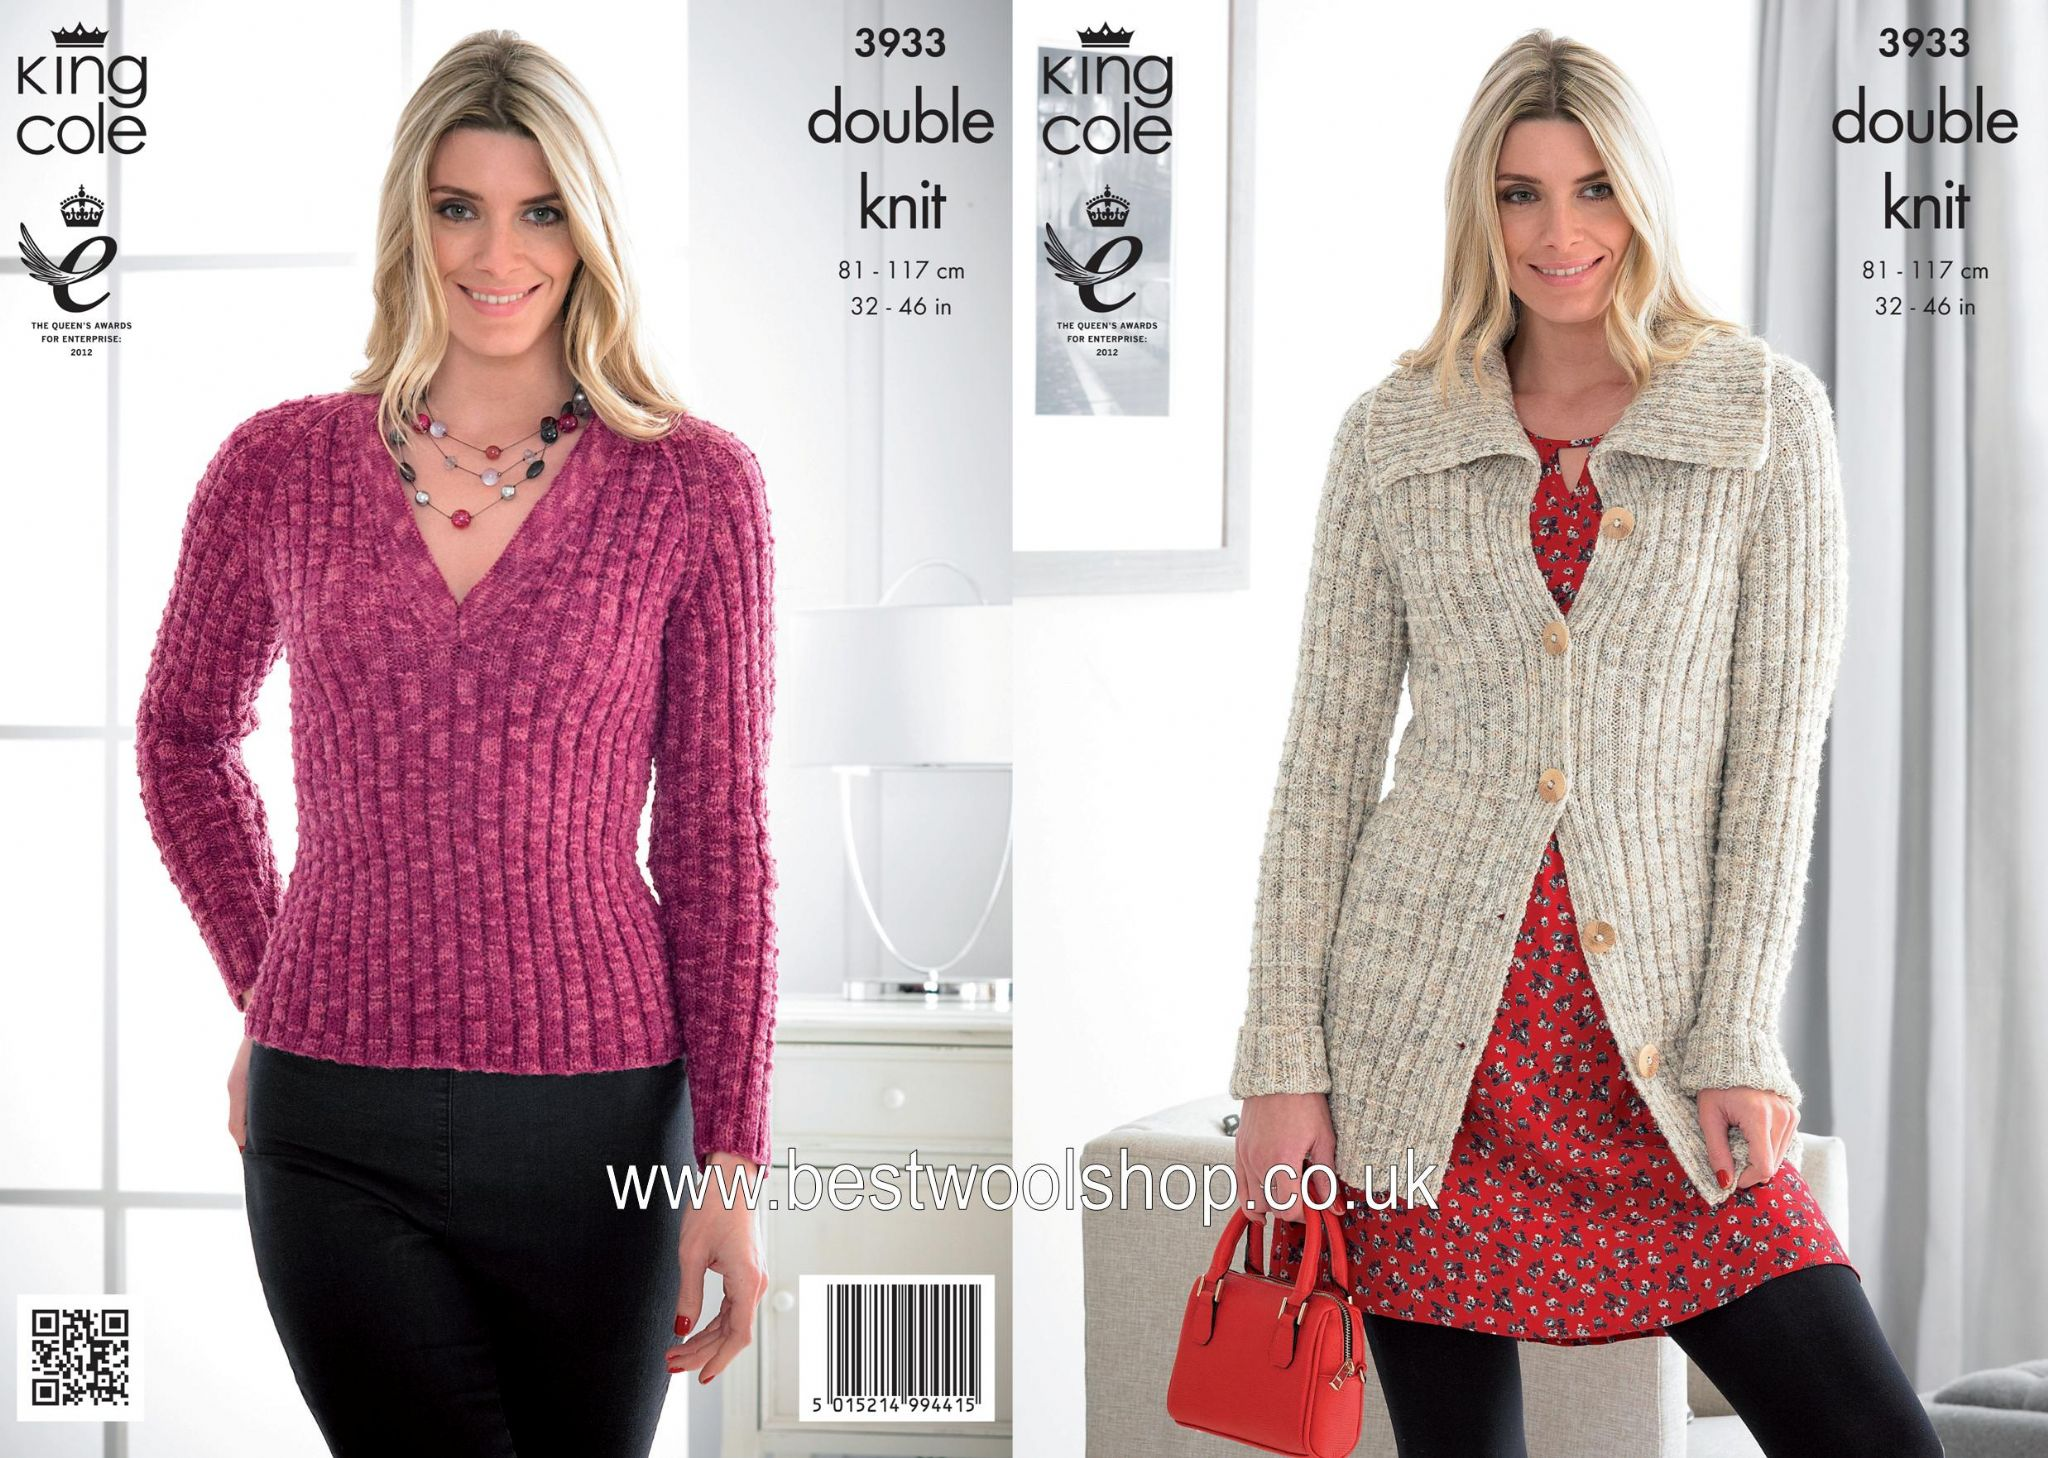 3933 - KING COLE MOODS DK COLLARED CARDIGAN & V-NECK RIBBED SWEATER ...